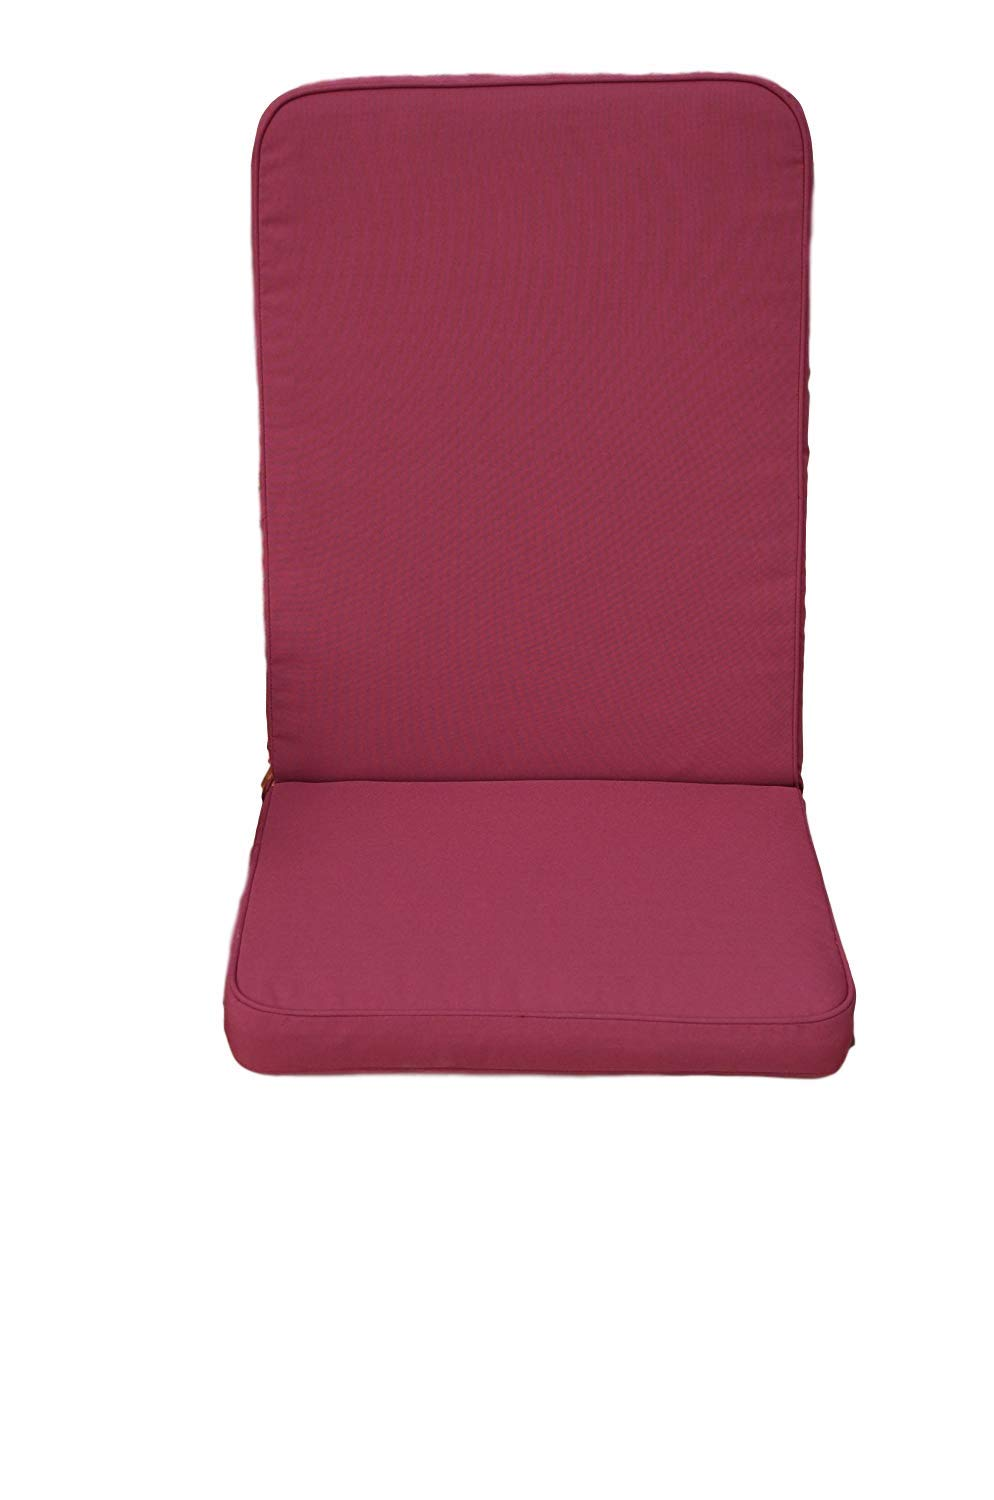 Classic Seat Pad and Back Cushion for Indoor/Outdoor Garden Chair (Pack of 2) - Cushions Only - Burgundy Patio Furniture